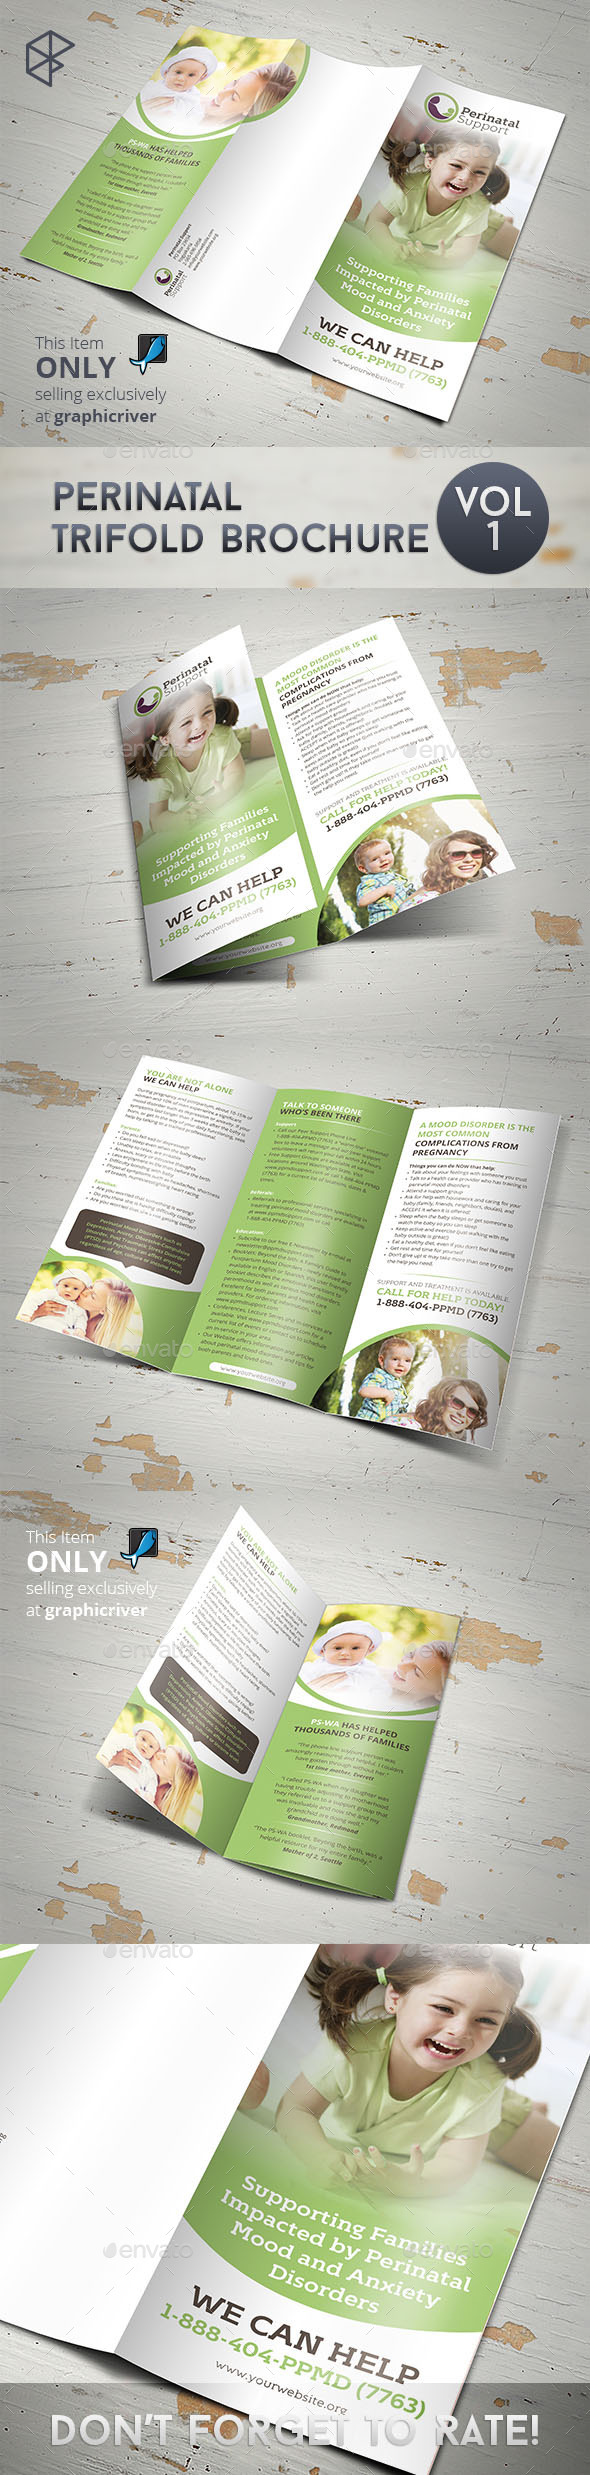 Perinatal Trifold Brochure - Corporate Brochures